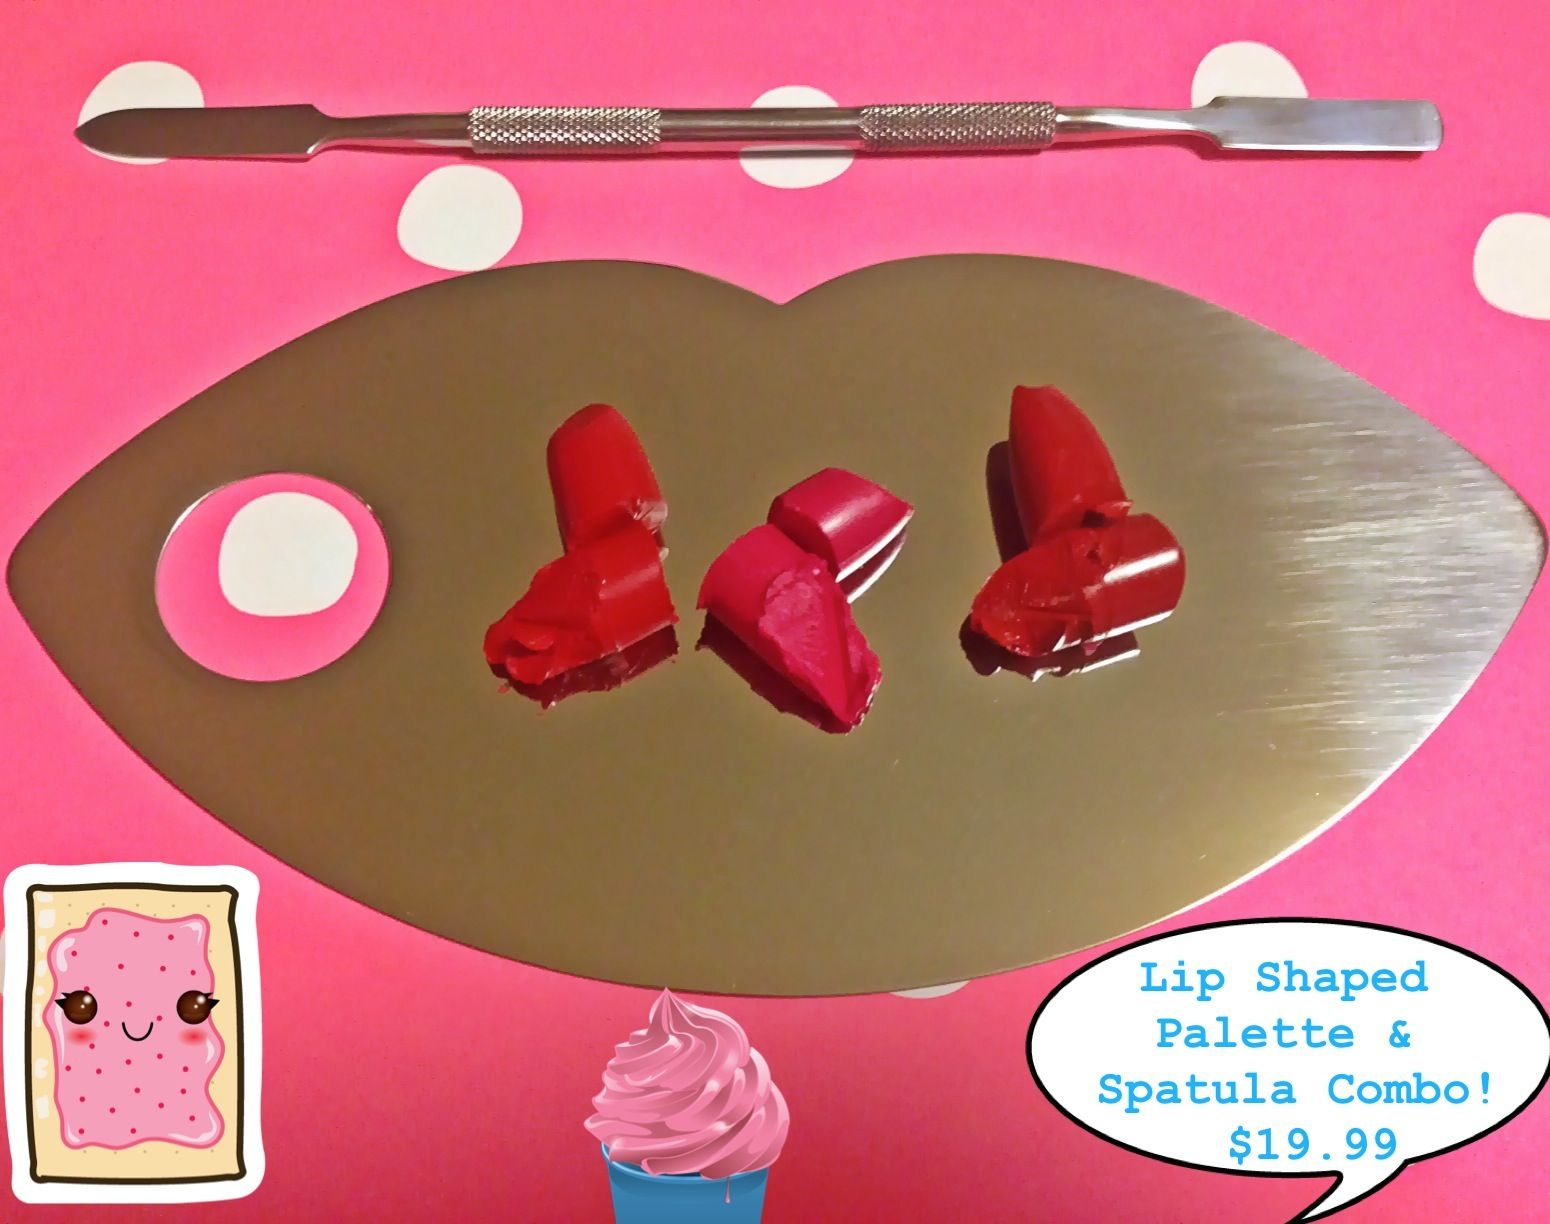 Stainless Steel Mixing Makeup Palette & Spatula COMBO